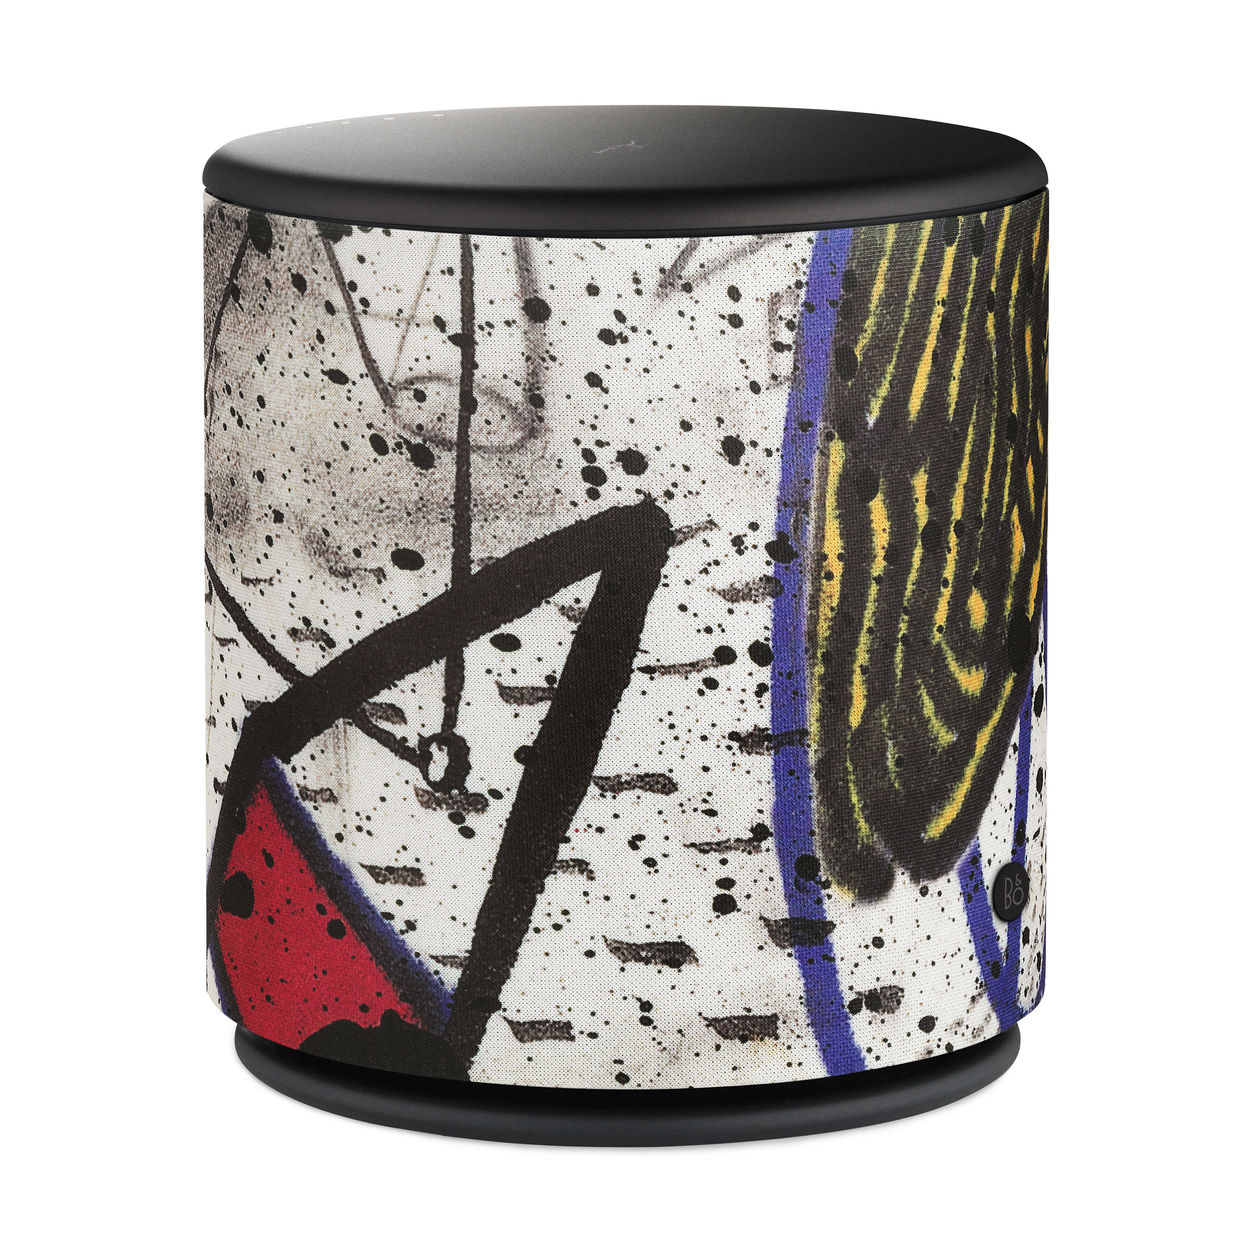 David Lynch speaker for Bang and Olufson, on sale at MoMA